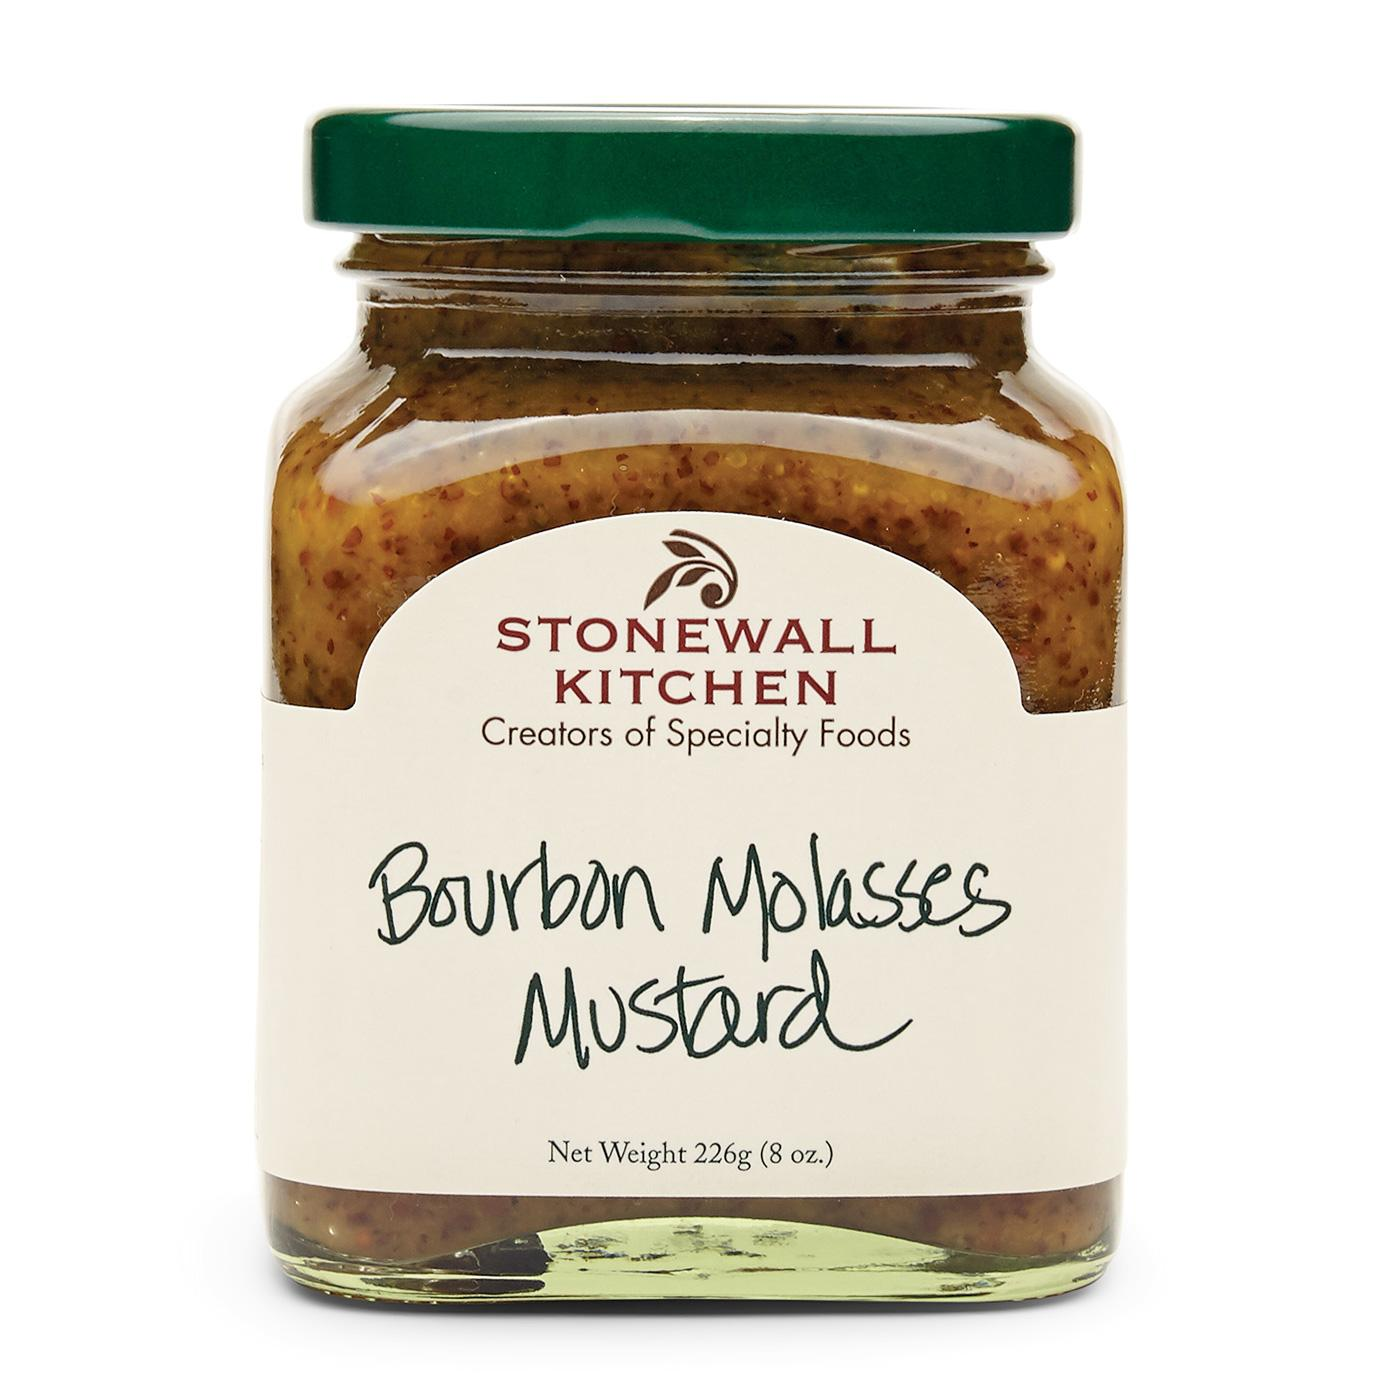 Jar Of Stonewall Kitchen Bourbon Molasses Mustard 8 Oz. 226g Made In Maine Stone Ground